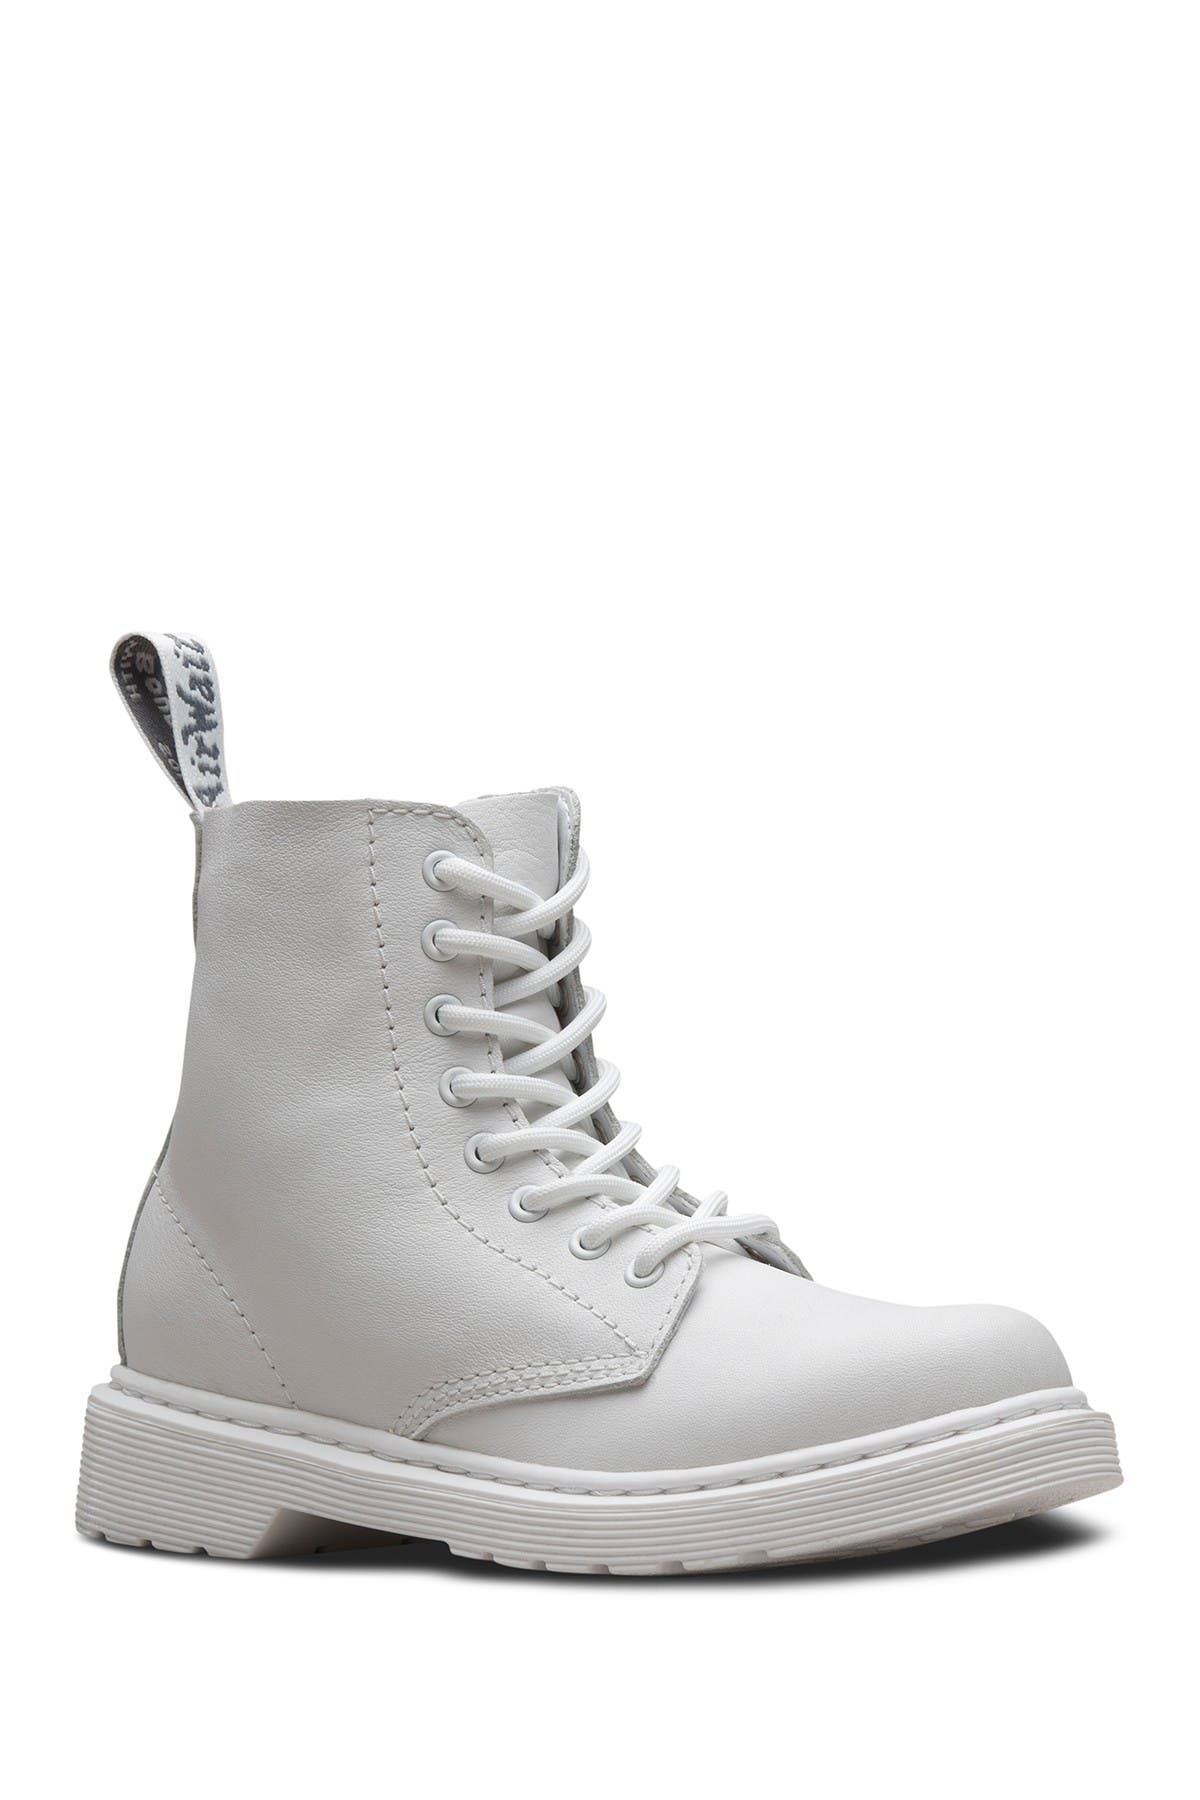 Image of Dr. Martens 1460 Boot